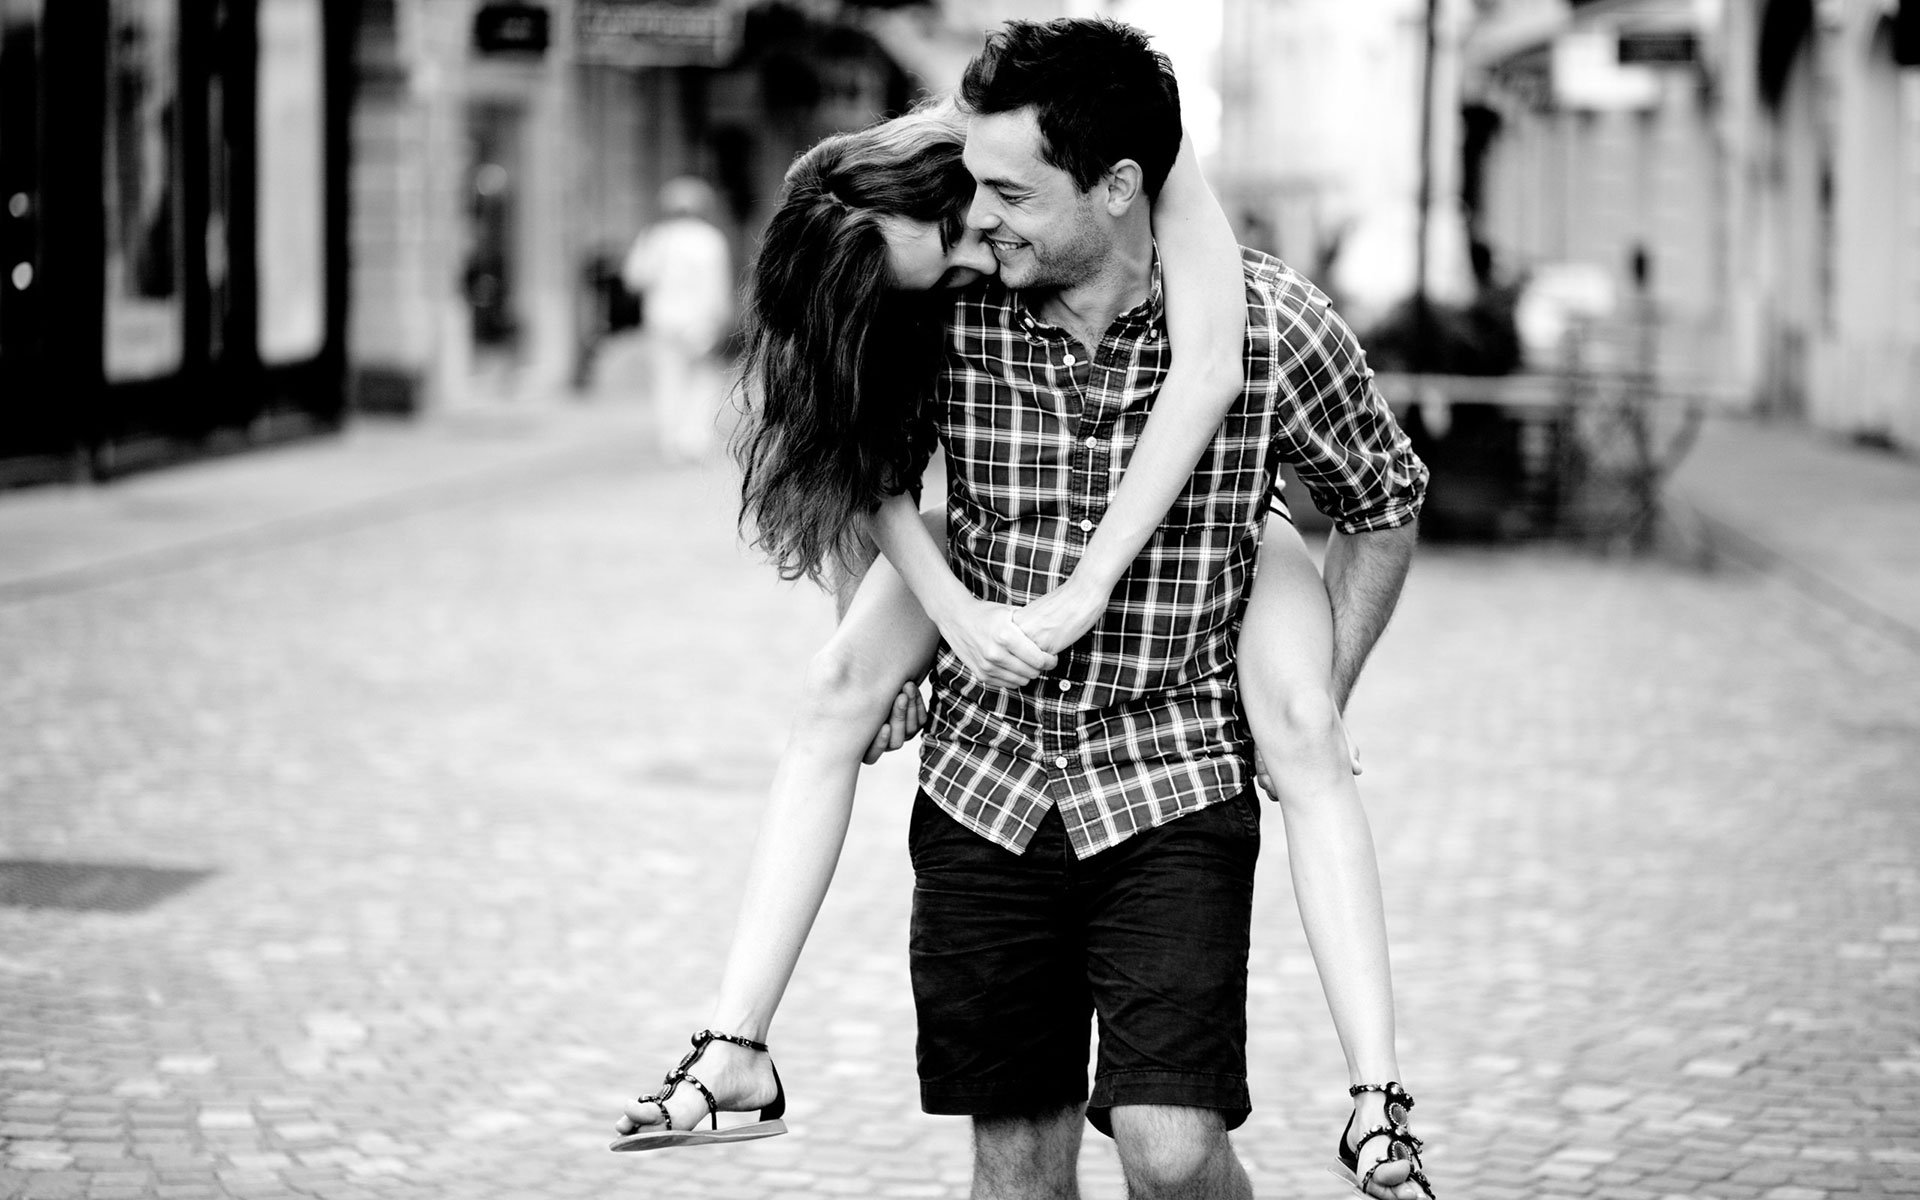 Love couple Hd Full Screen Wallpaper : Sweet Black and White Romance Wallpaper of Love couples